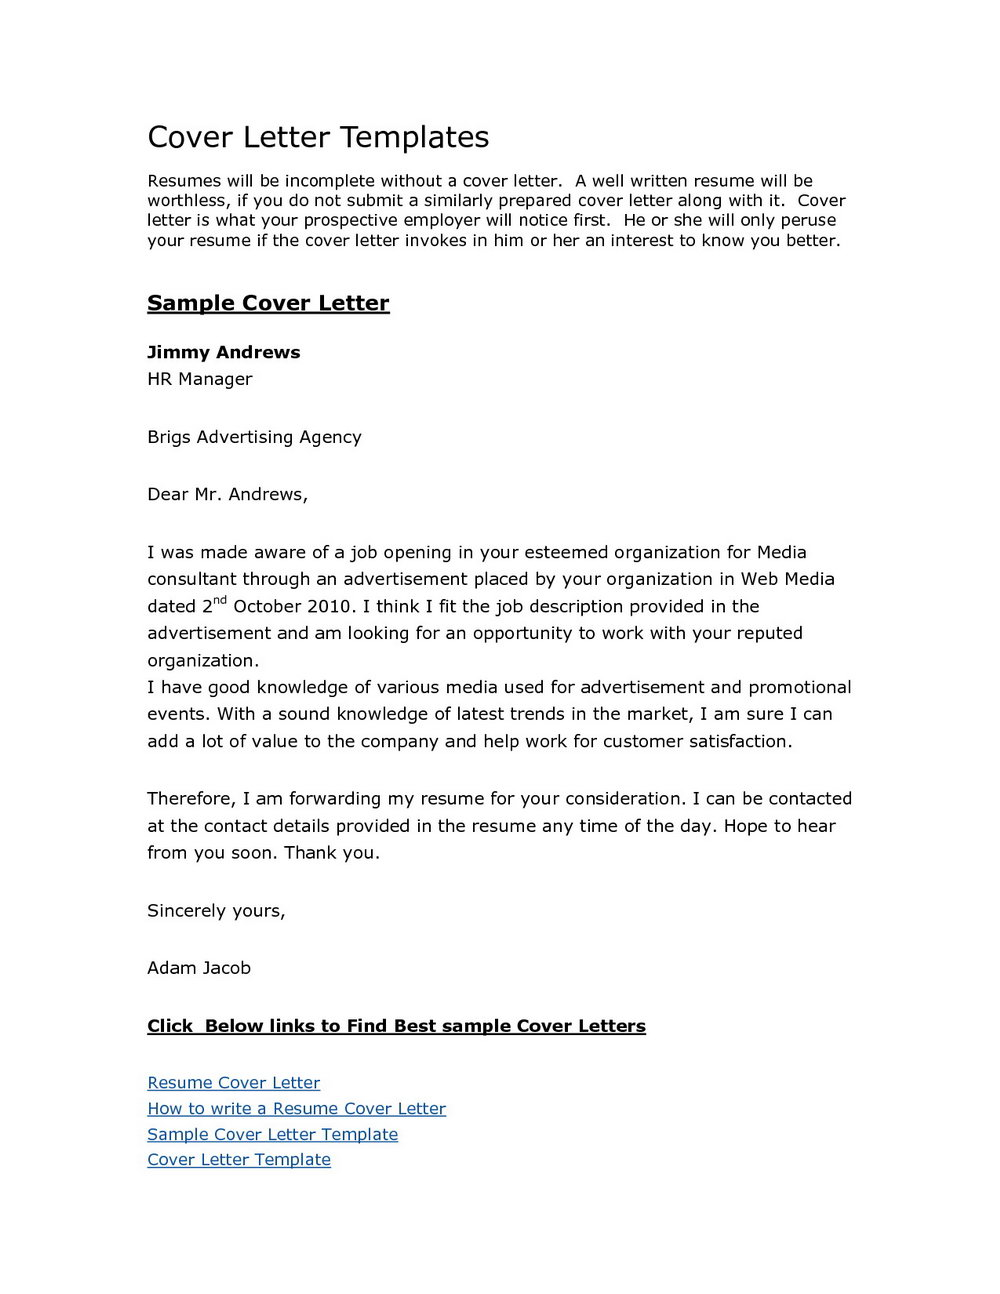 Cover Letters | Resume Examples